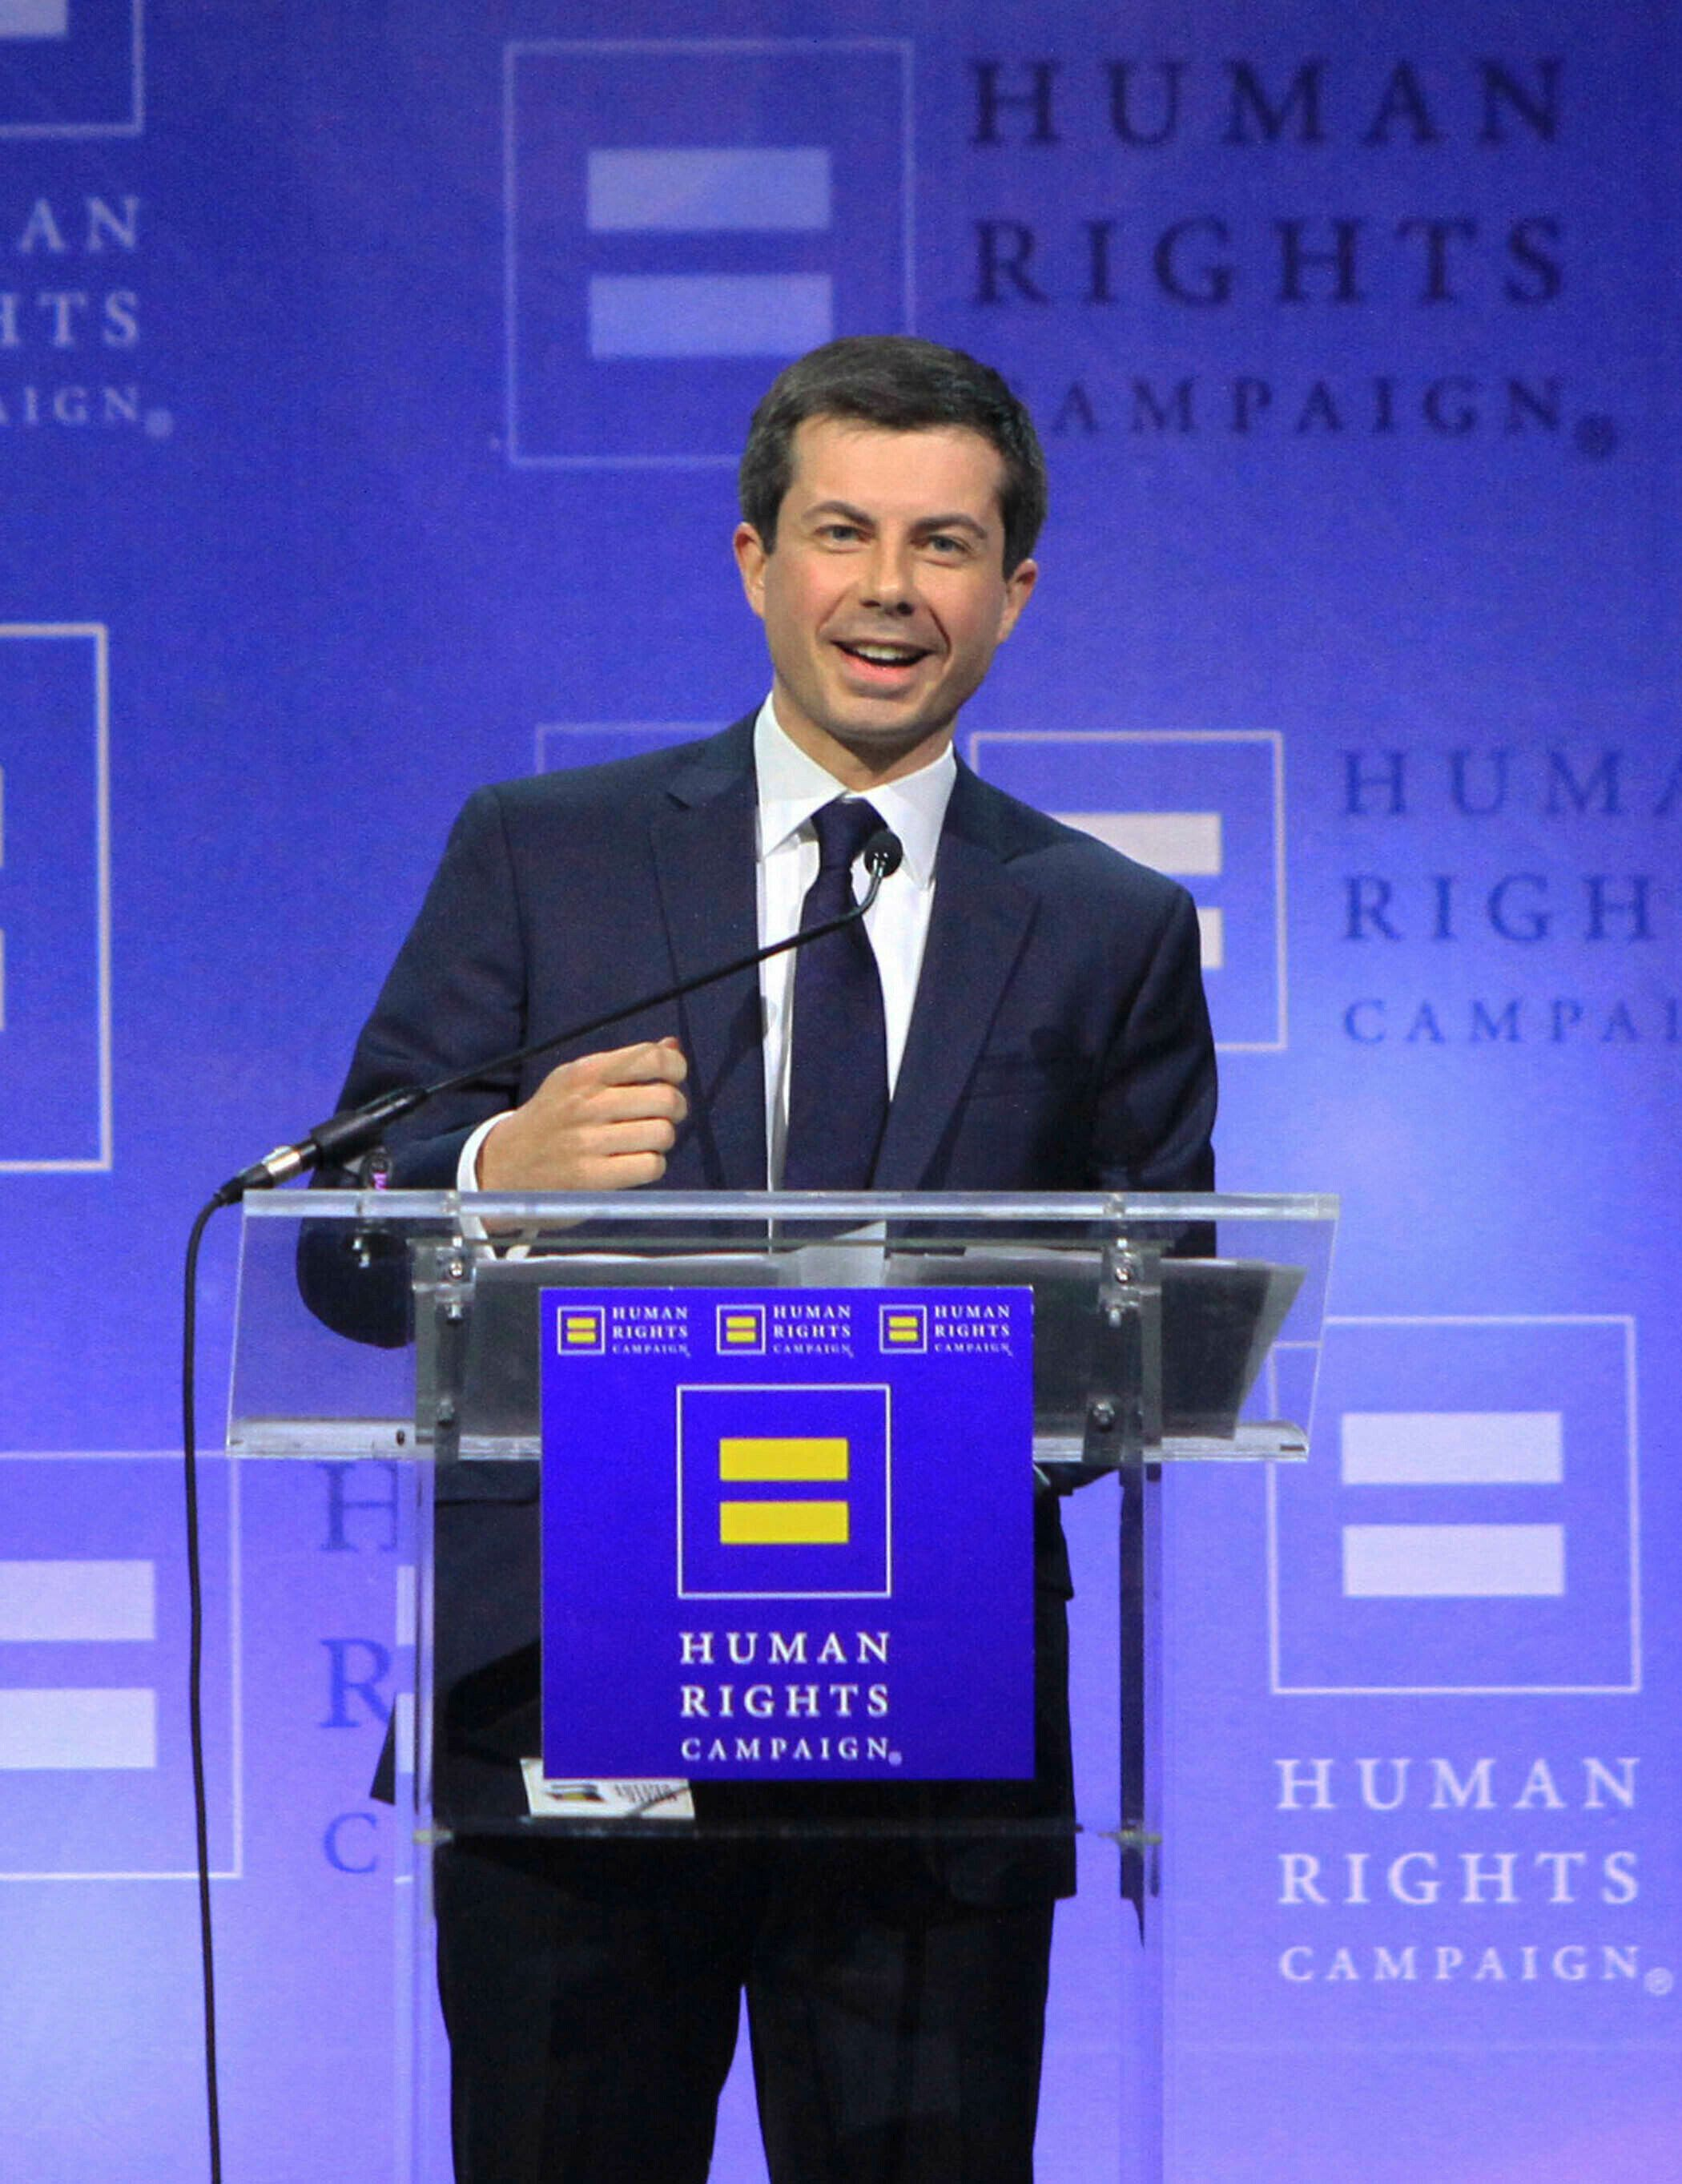 Photo by: Raoul Gatchalian/STAR MAX/IPx 2019 5/11/19 Democratic Presidential Candidate Pete Buttigieg delivers keynote address at Human Rights Campaign's 14th annual Las Vegas Gala at Caesars Palace in Las Vegas, Nevada.